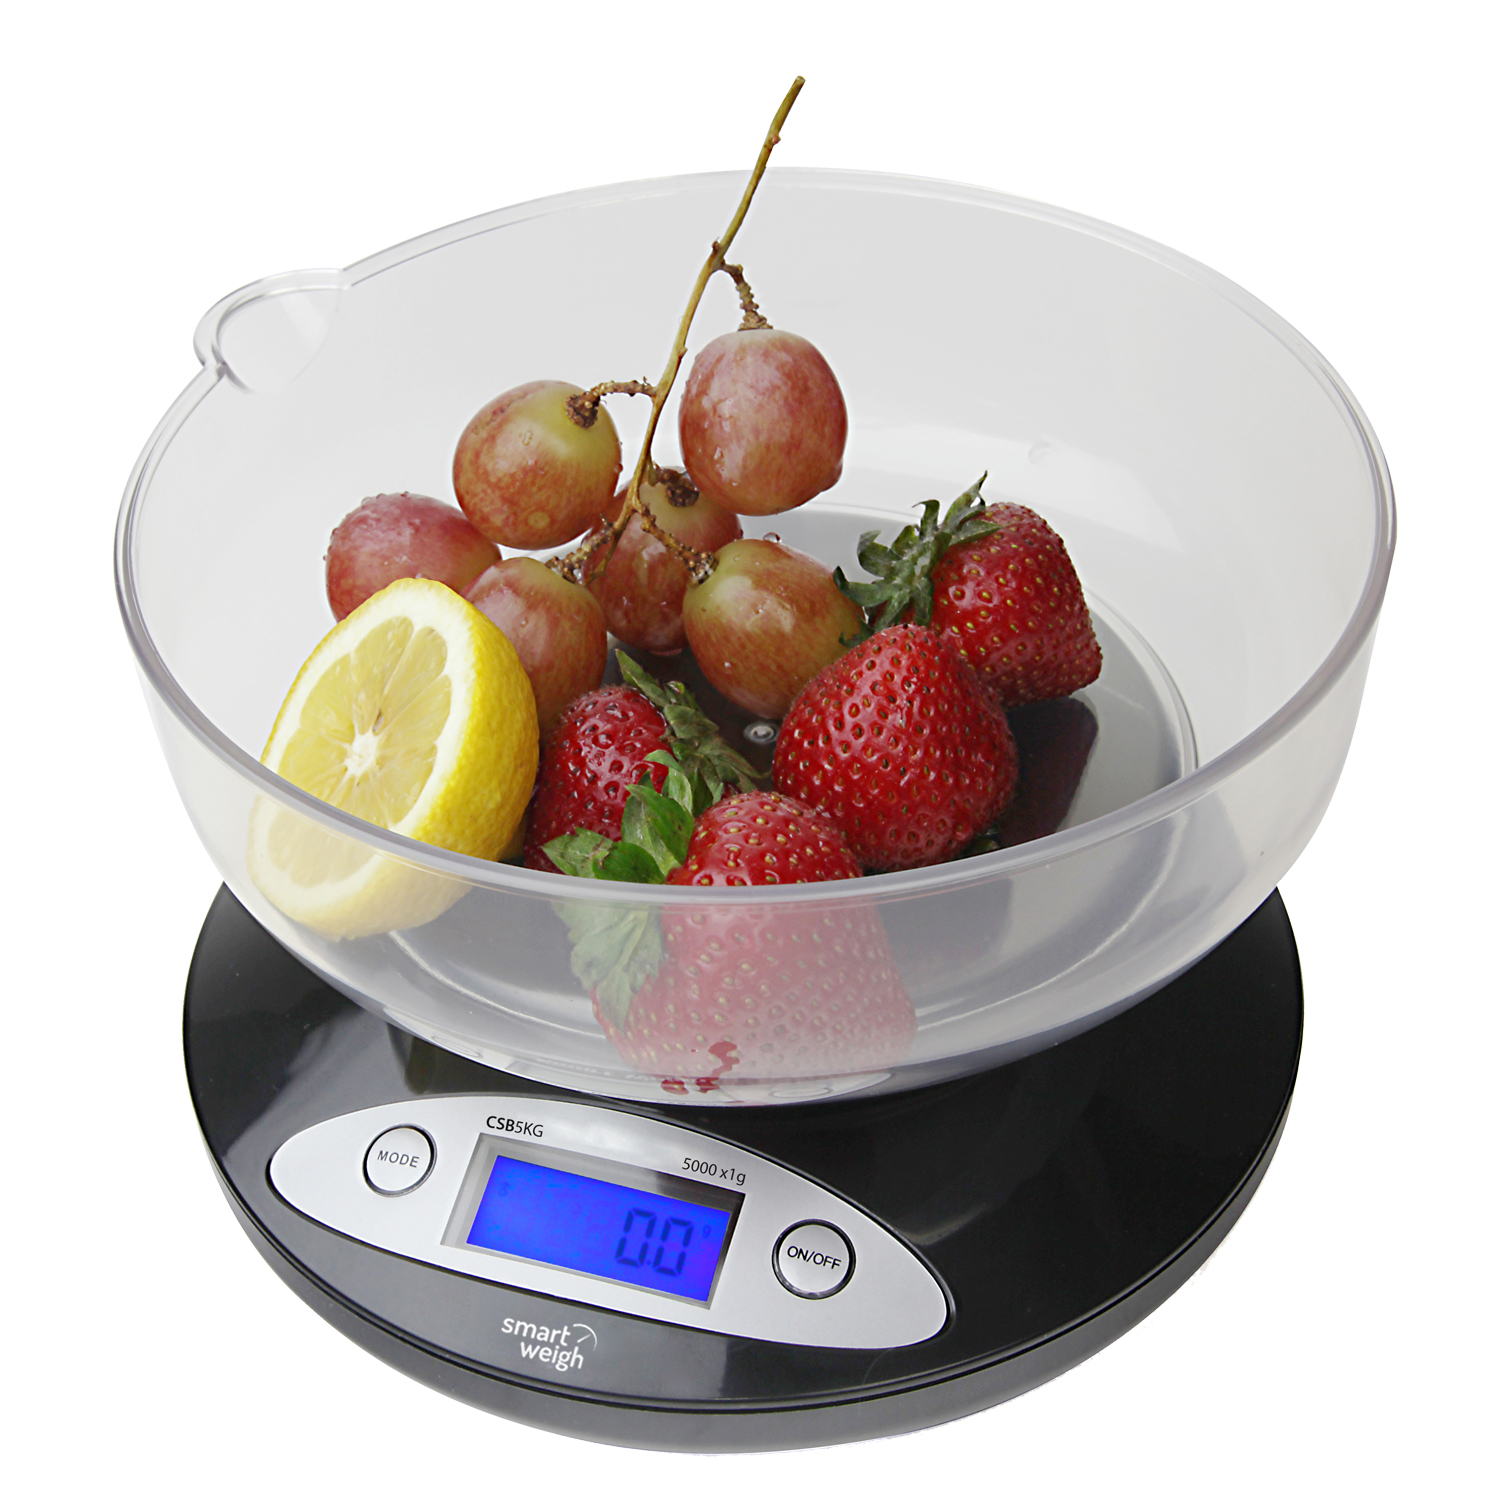 Smart Weigh Kitchen Digital Food Scale for Bake + Diet w/ Bowl 11lbs x 0.1oz